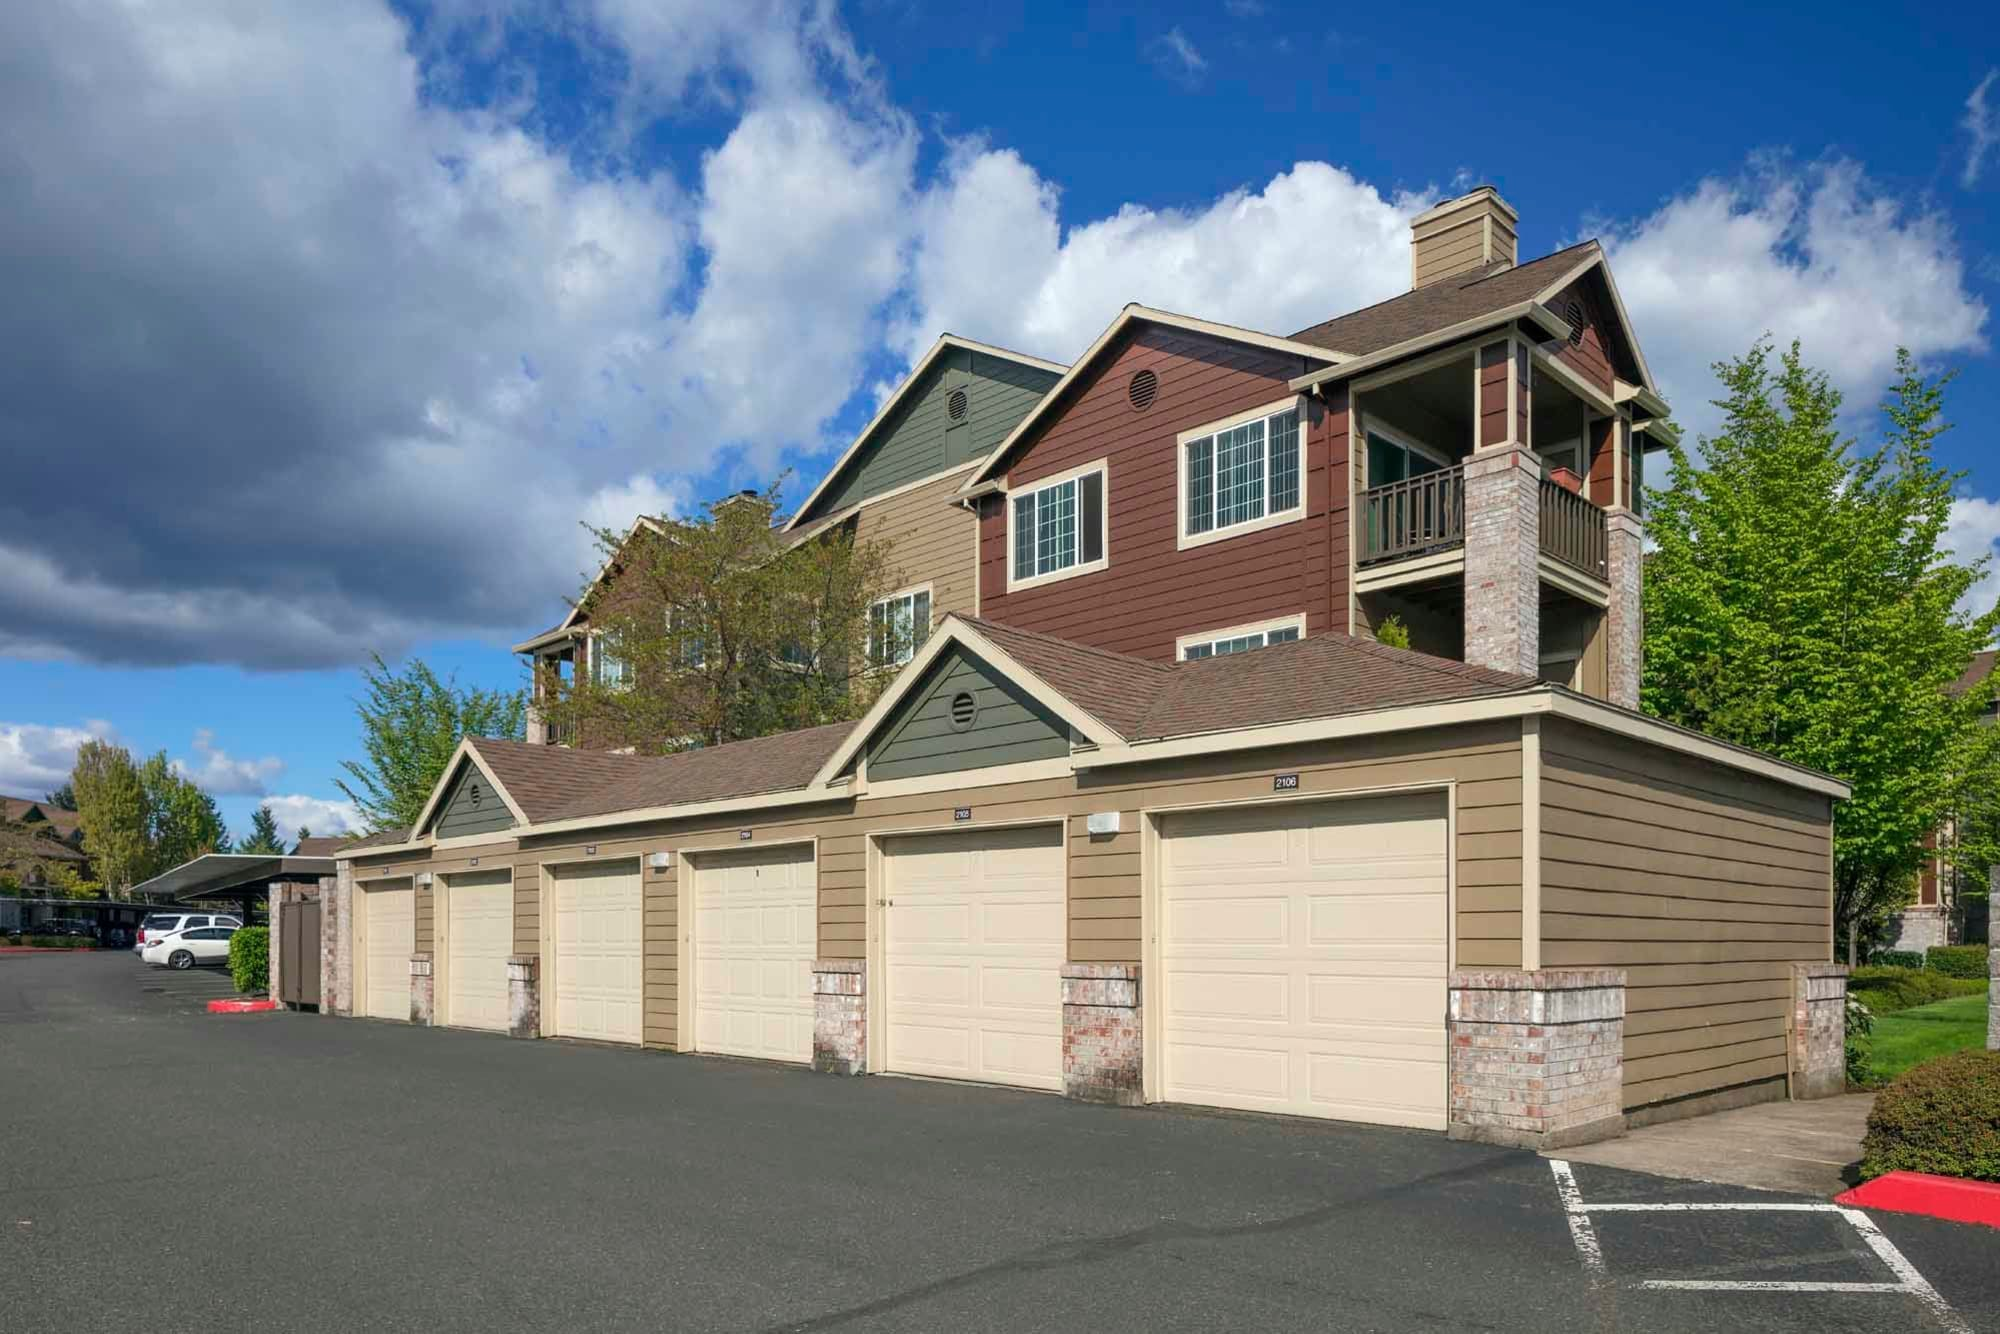 A large, 6 car garage near The Grove at Orenco Station in Hillsboro, Oregon